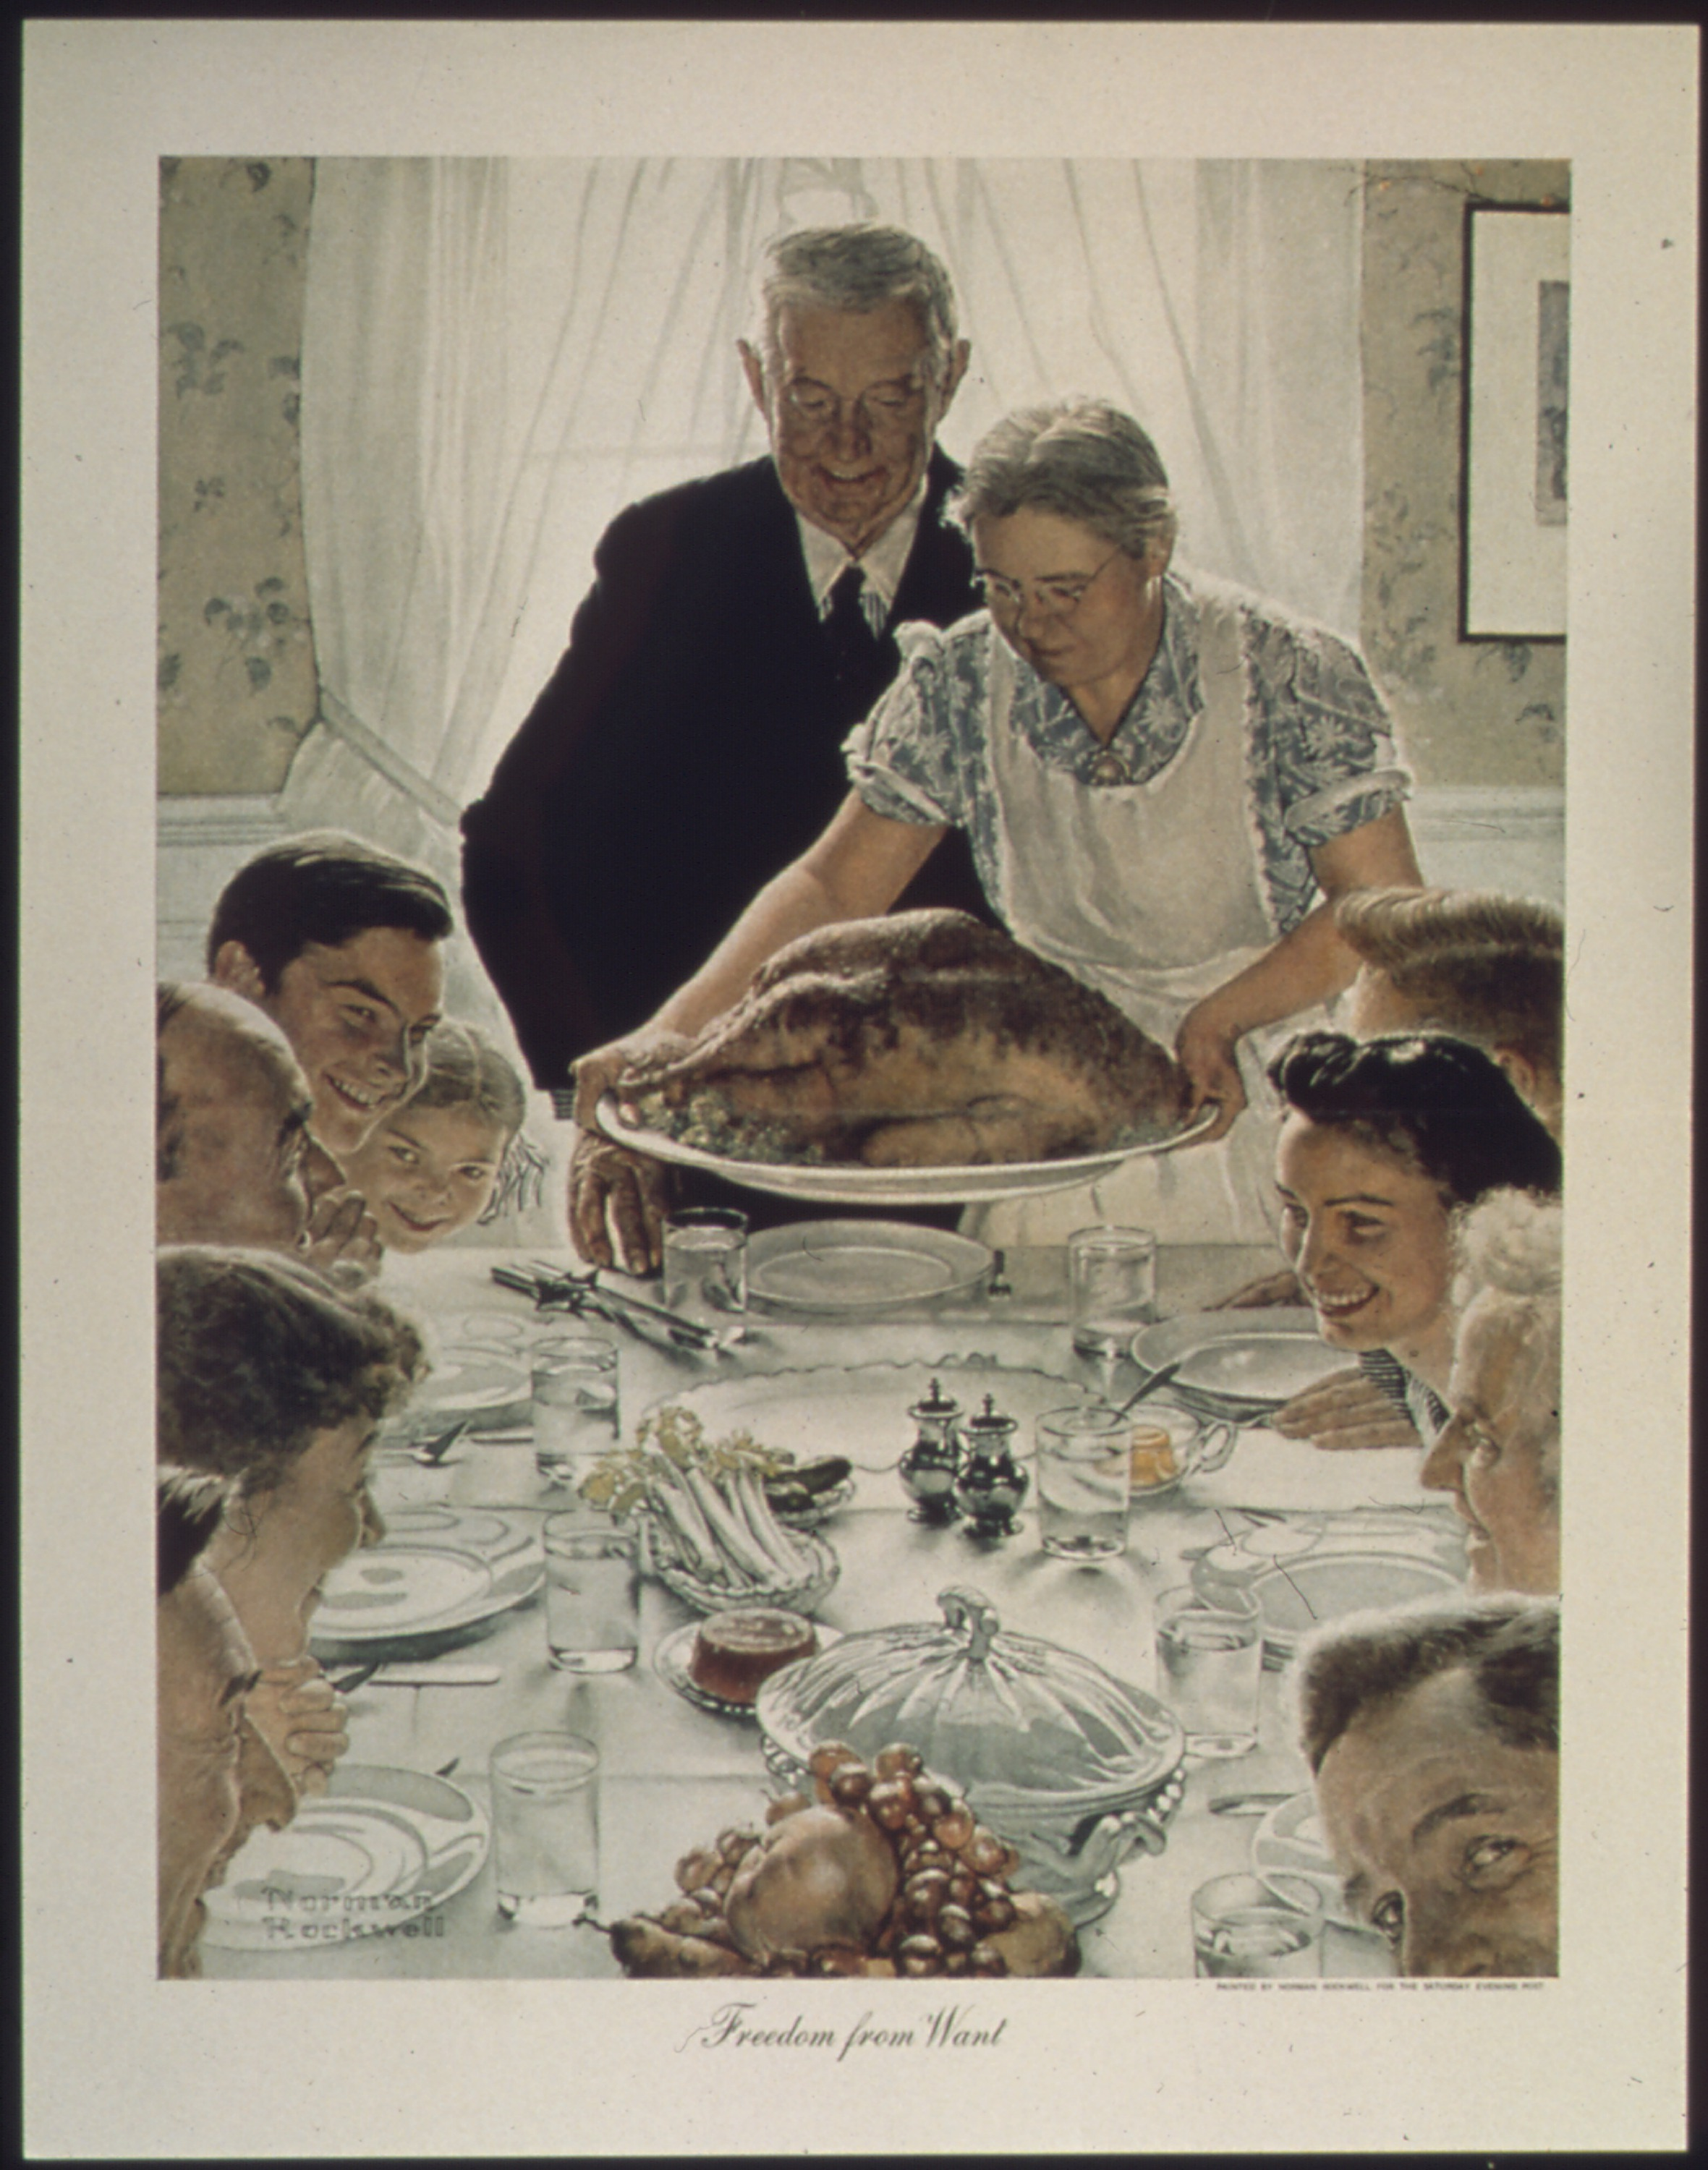 norman-rockwell-freedom-from-want